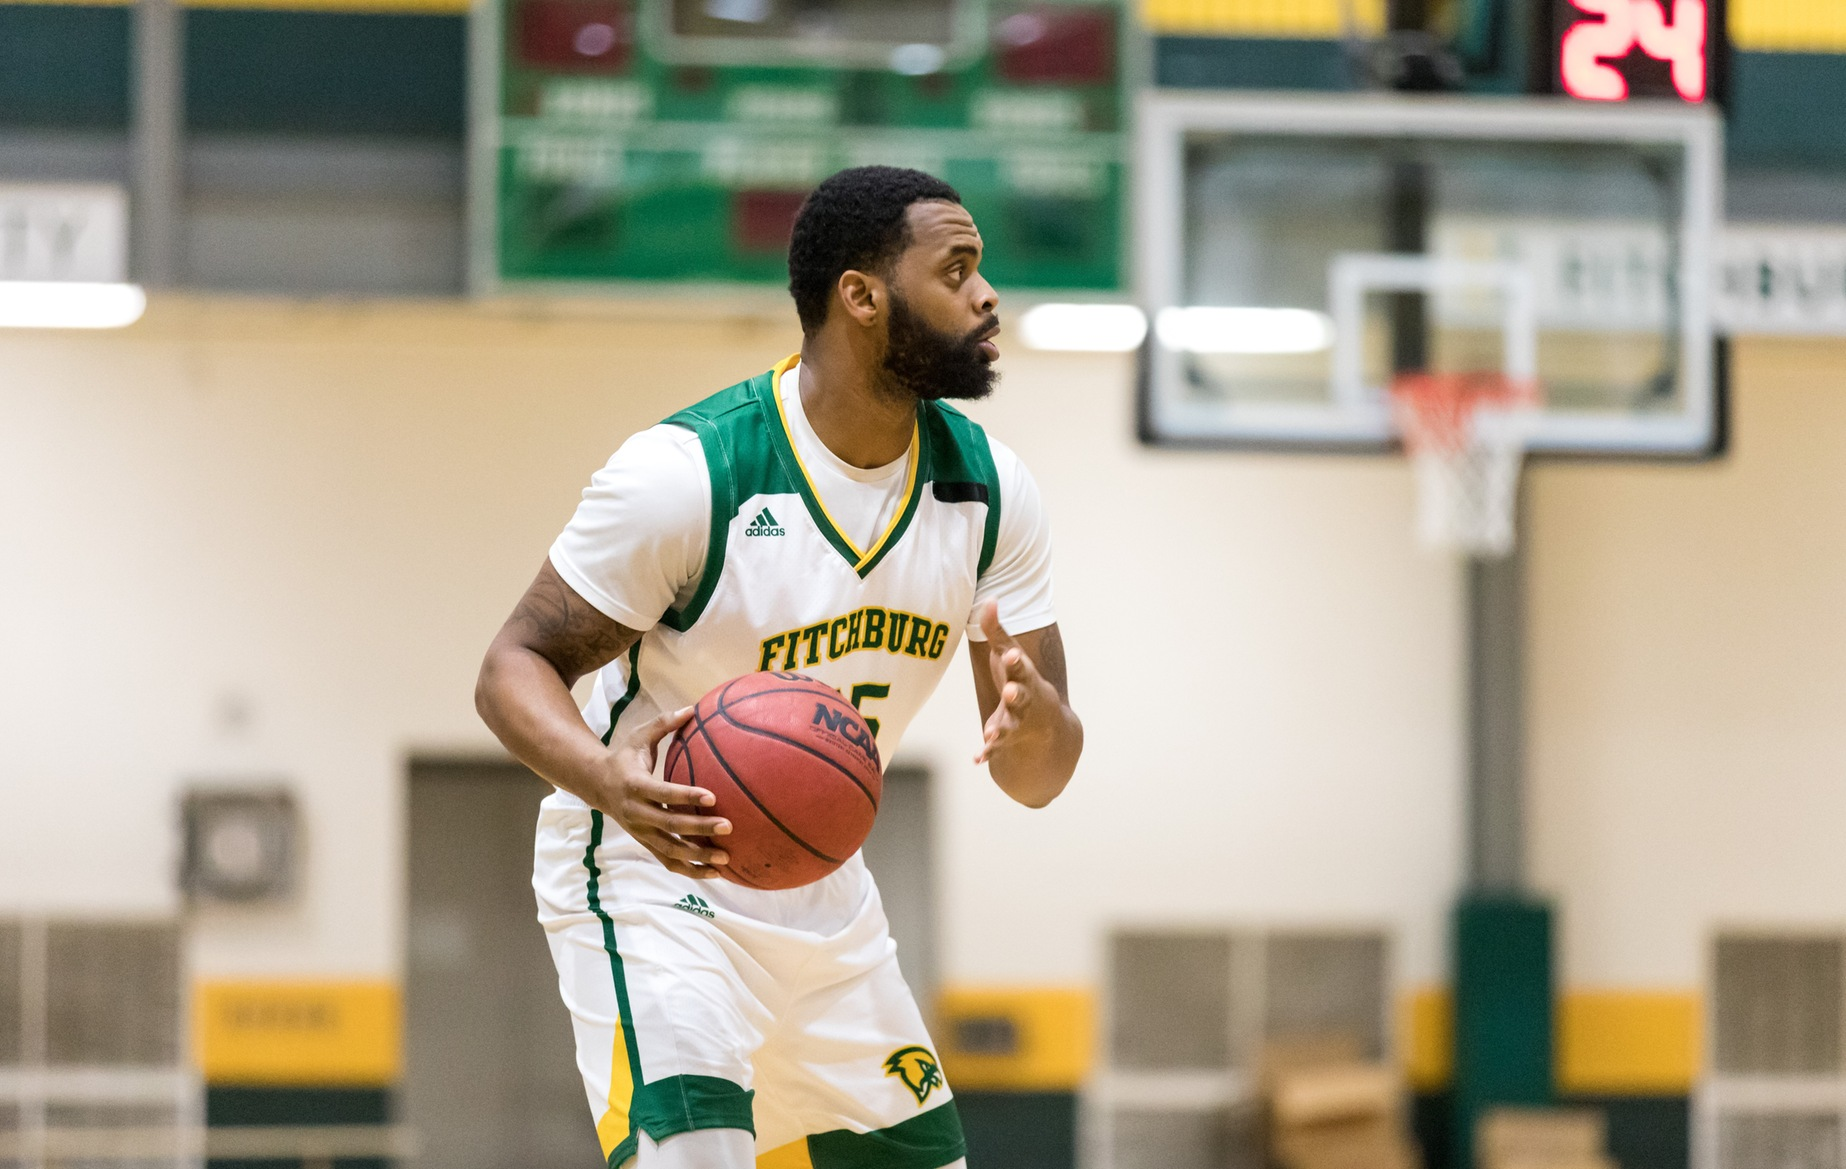 Falcons Roll Past Trailblazers in MASCAC action, 94-73